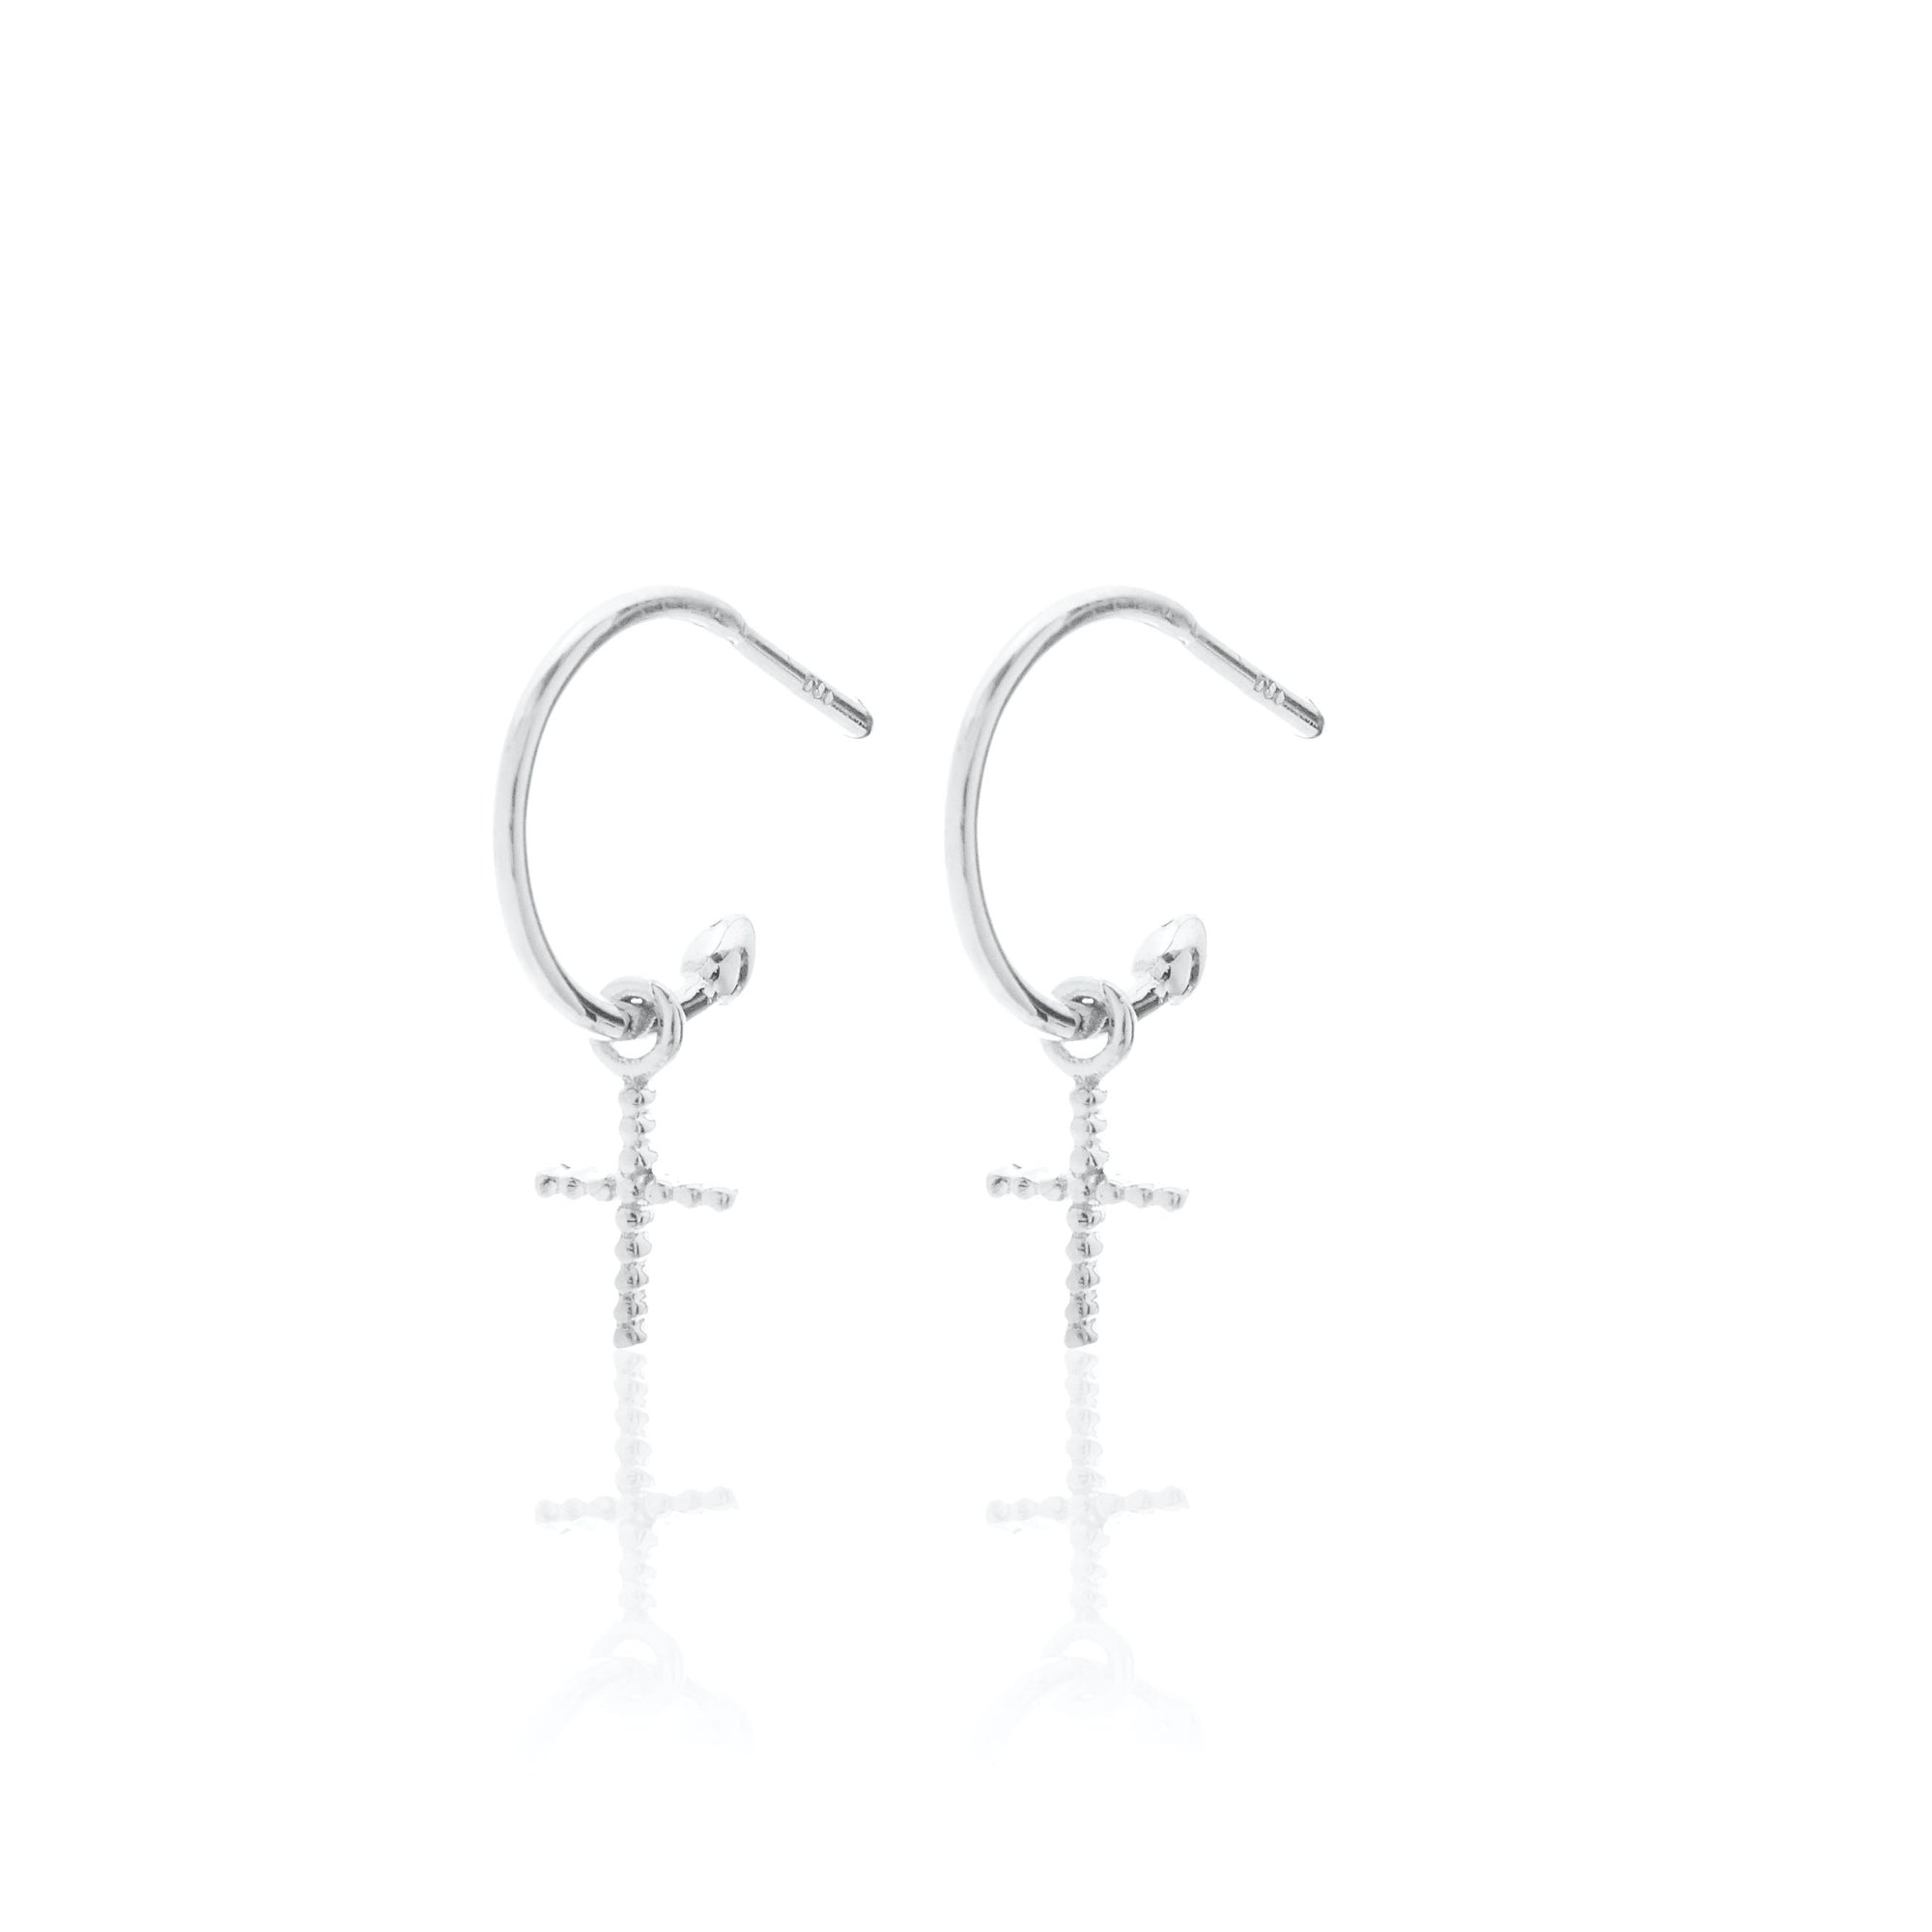 Silk & Steel Jewellery Superfine Cross Earrings Silver